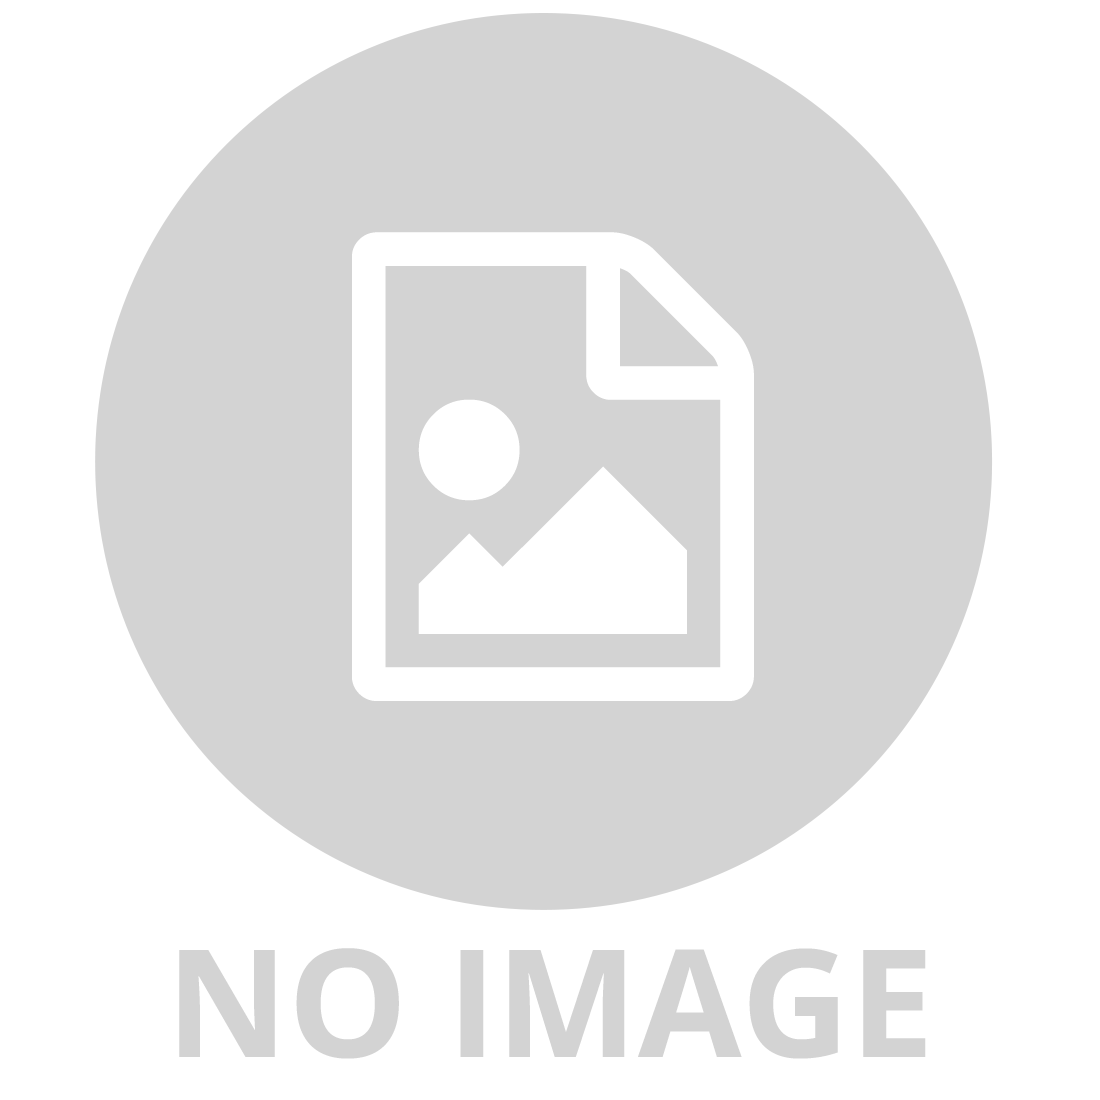 WAHU POOL PARTY - THE PADDLE WHEEL